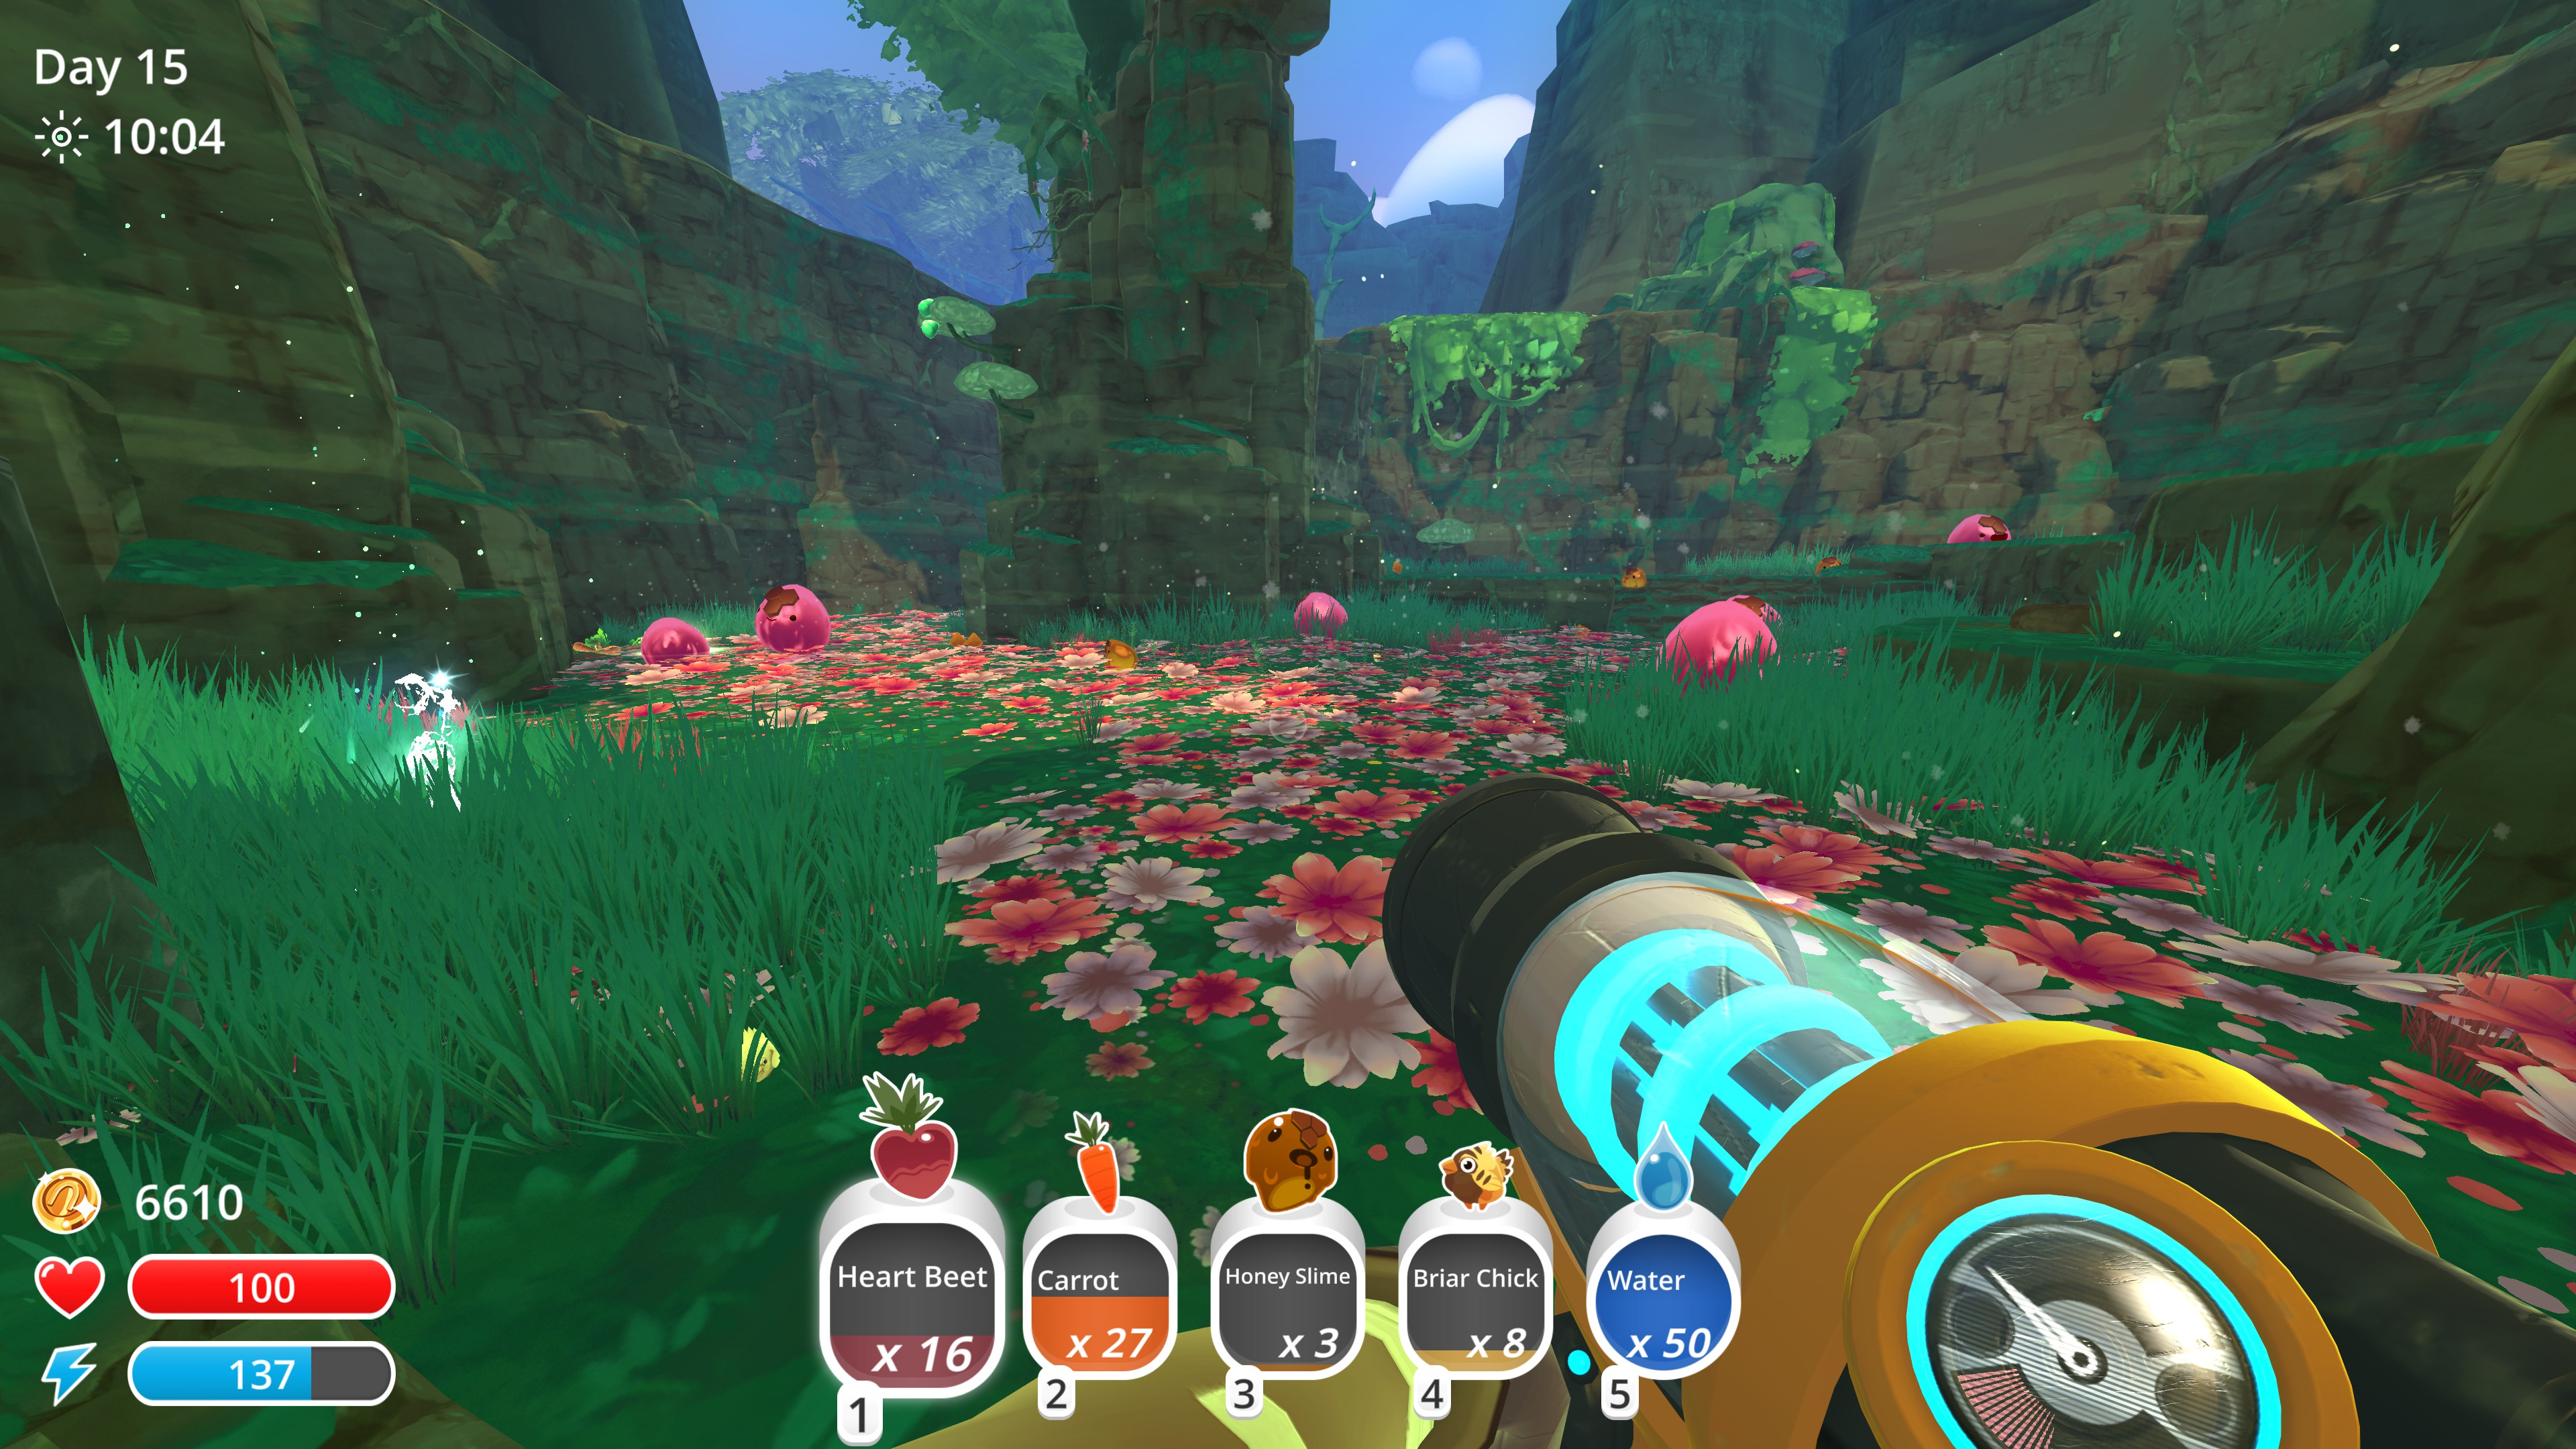 jungle scenee full of moss and flowers, large pink slimes with honeycomb on their forehead move about the grass